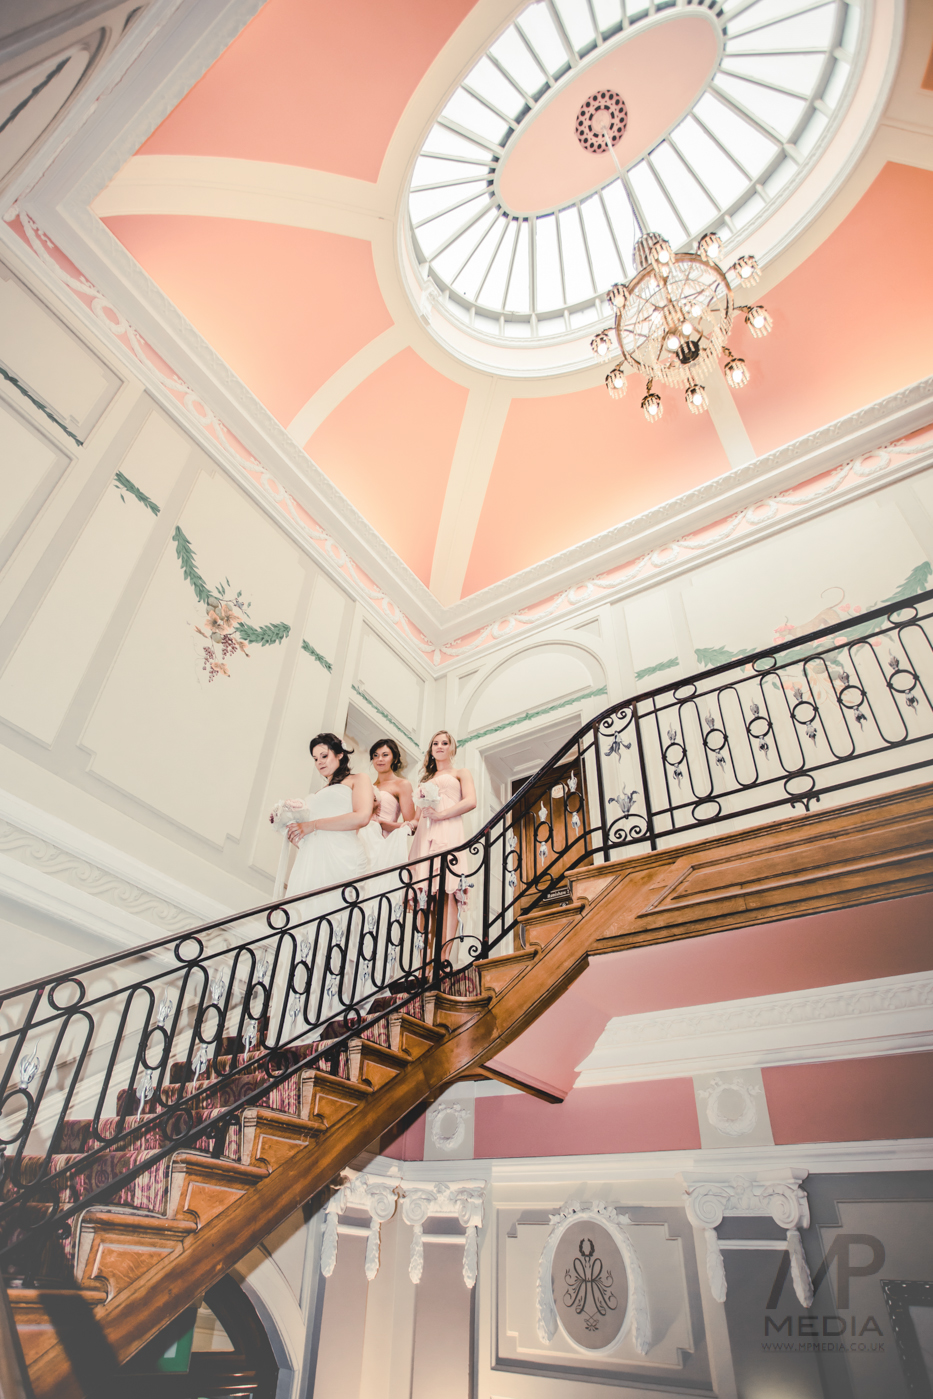 191 - Liam and Carlys Fine Art Wedding Photography at Ringwood Hall Hotel by Pamela and Mark Pugh Team MP - www.mpmedia.co.uk - Do NOT remove the watermark or edit this image without consent -.JPG